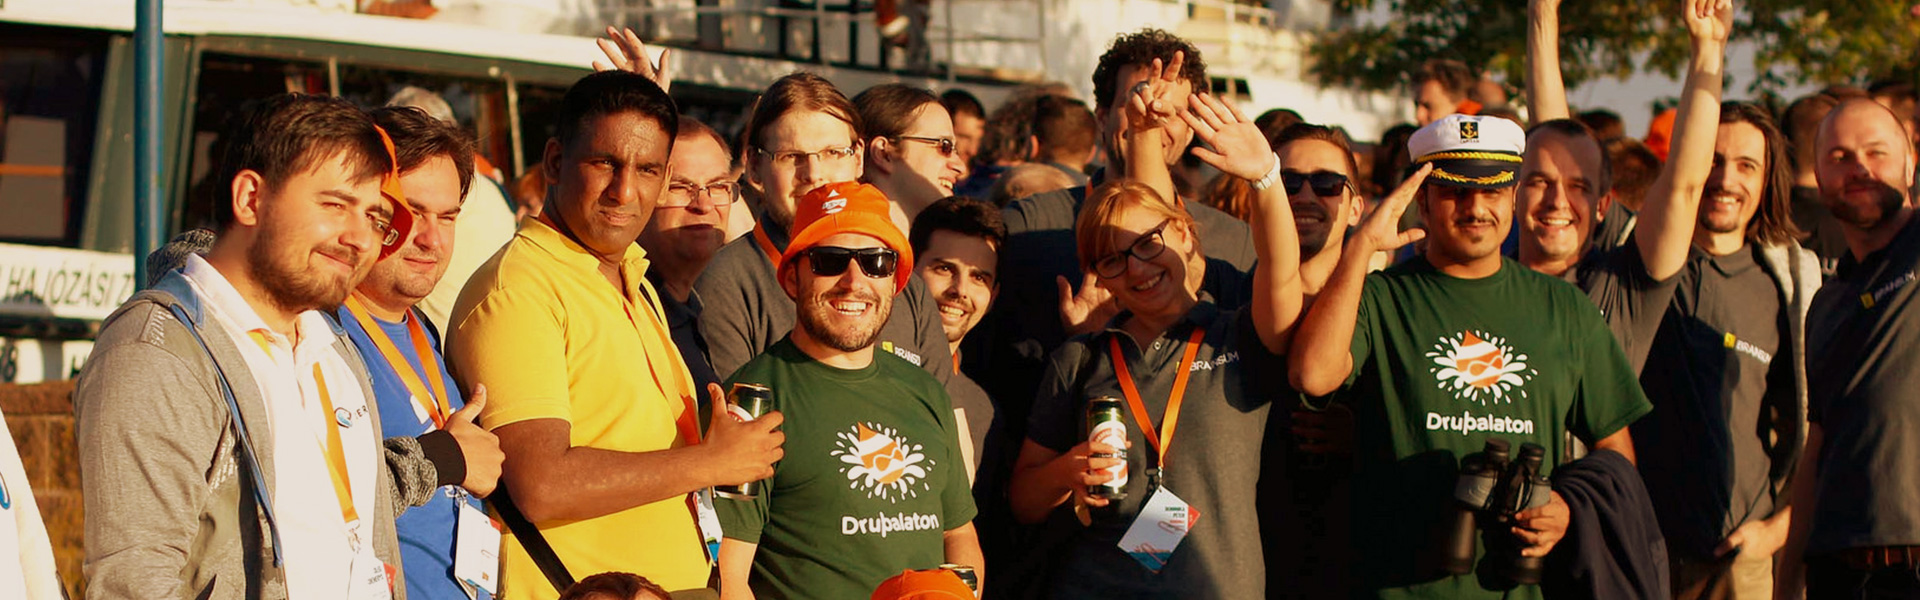 DrupalatON - Drupal & Party like never before